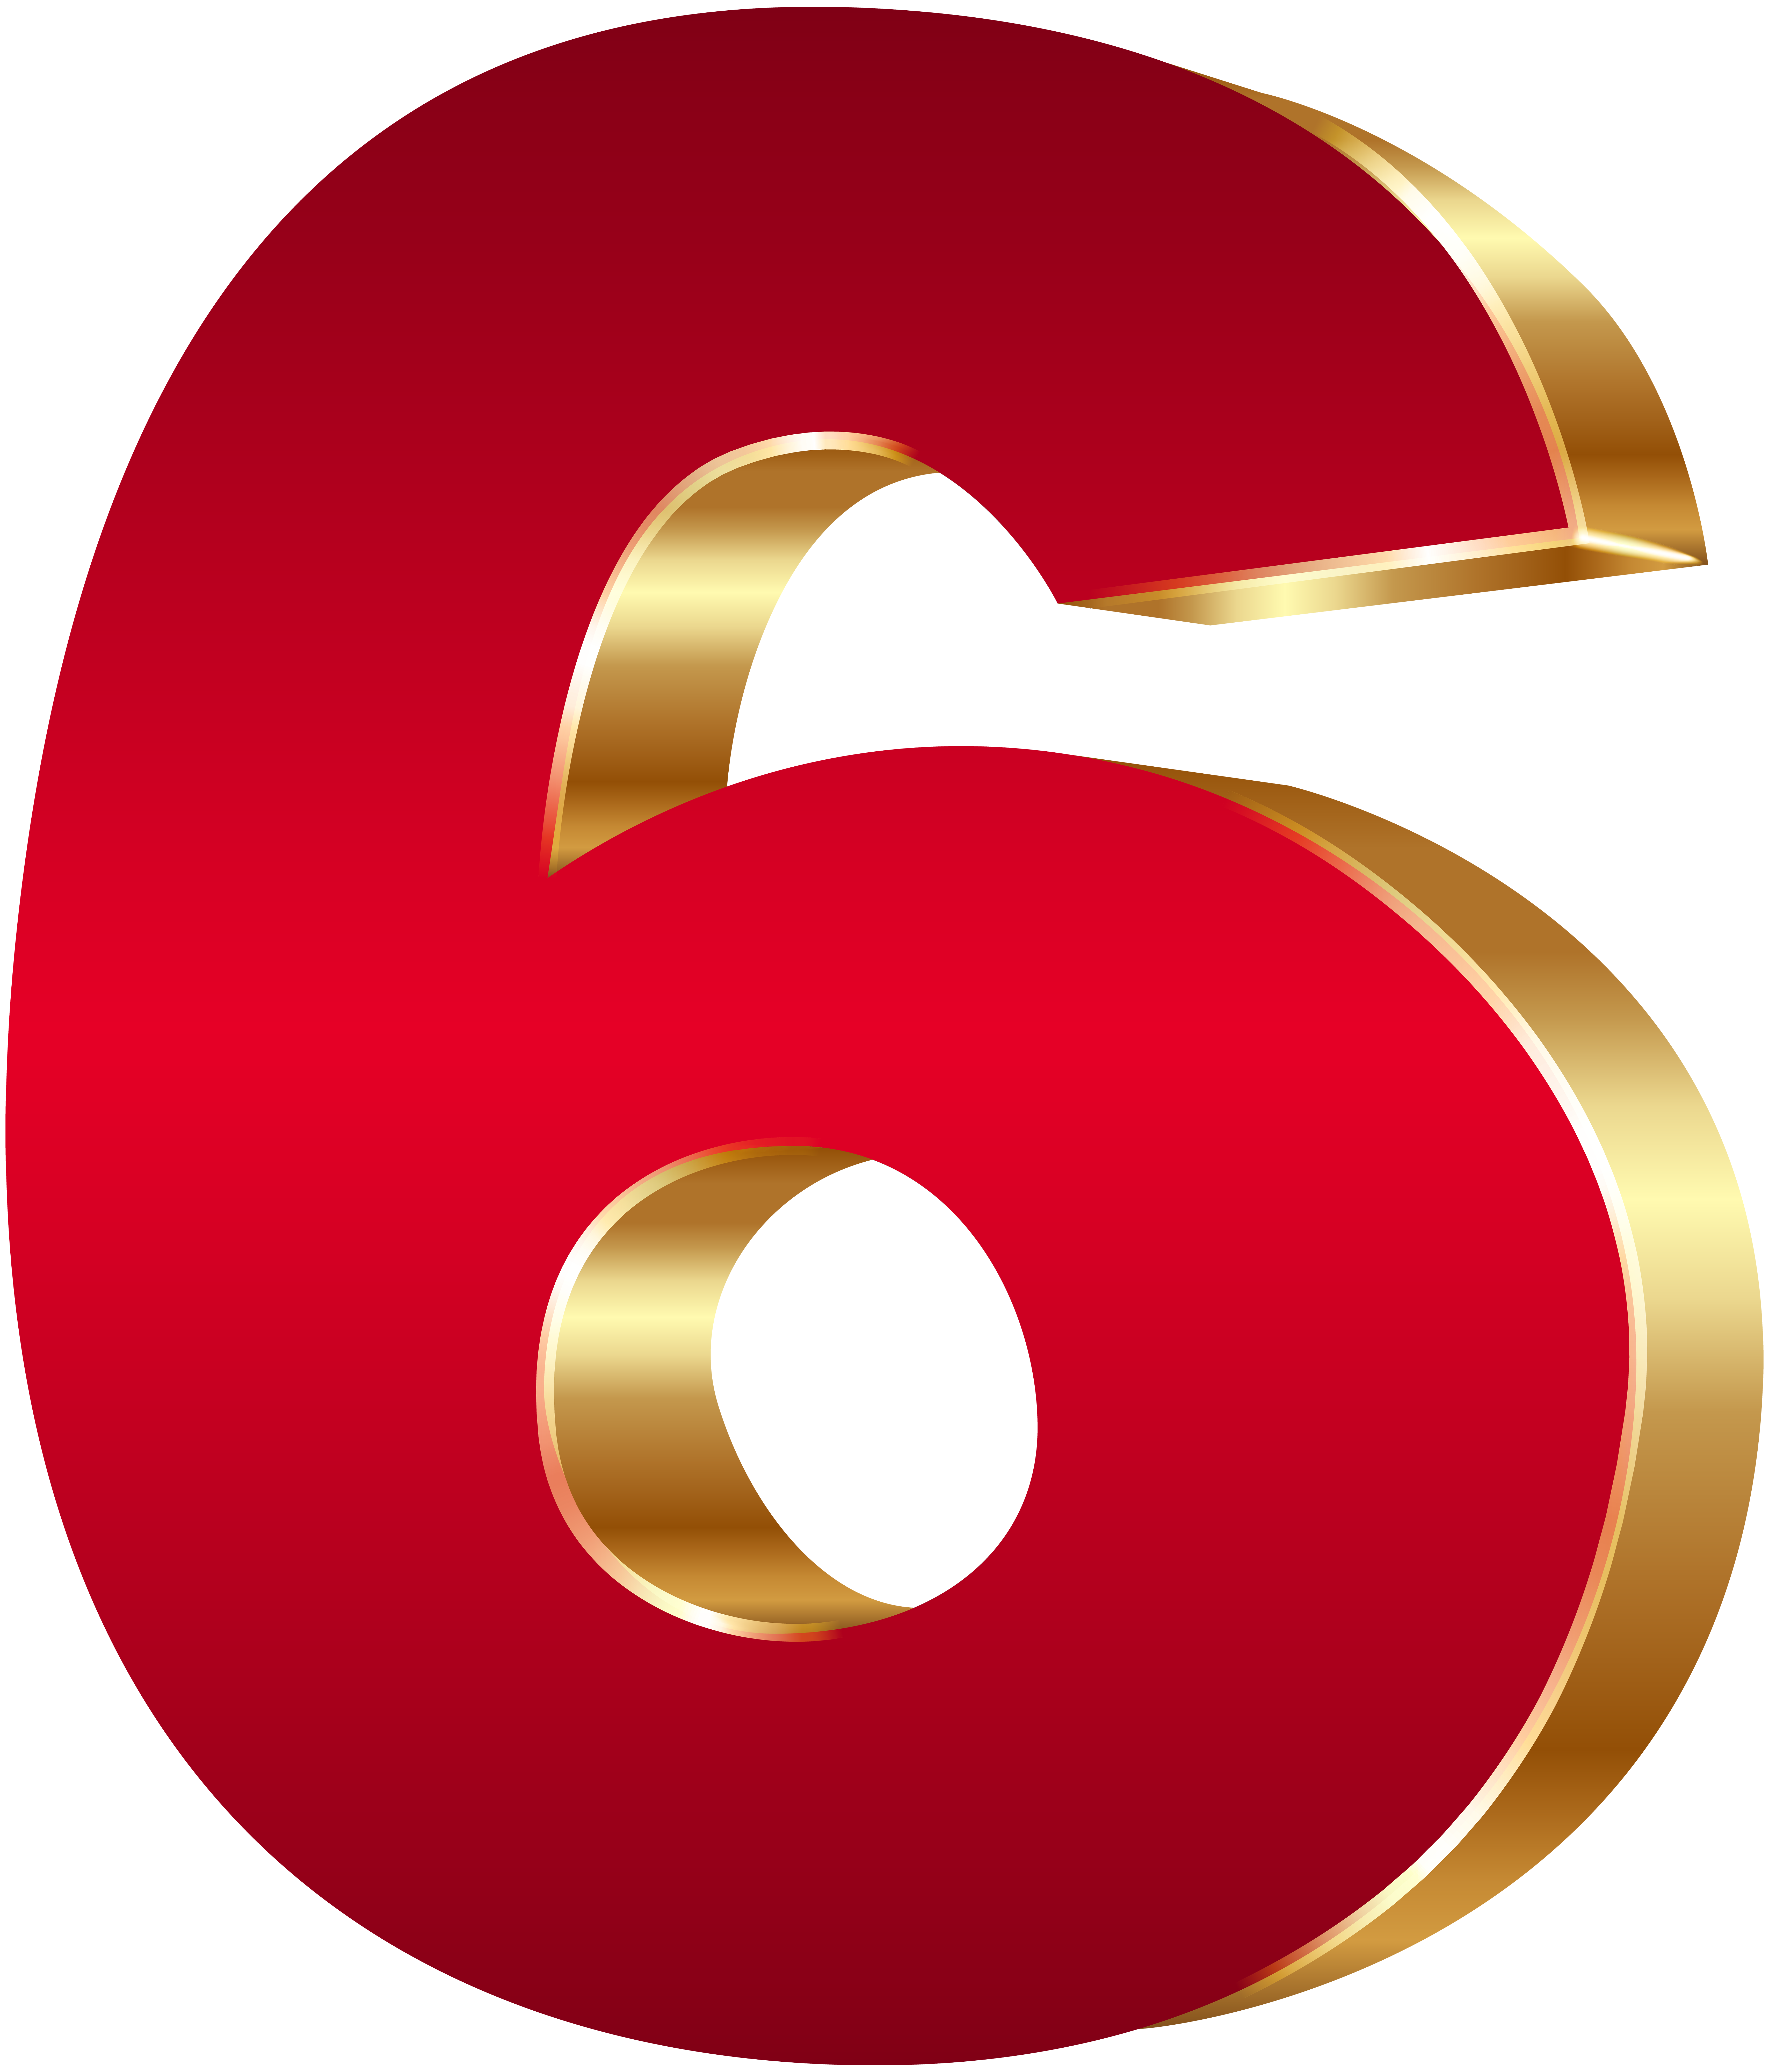 3D Number Six Red Gold PNG Clip Art Image.